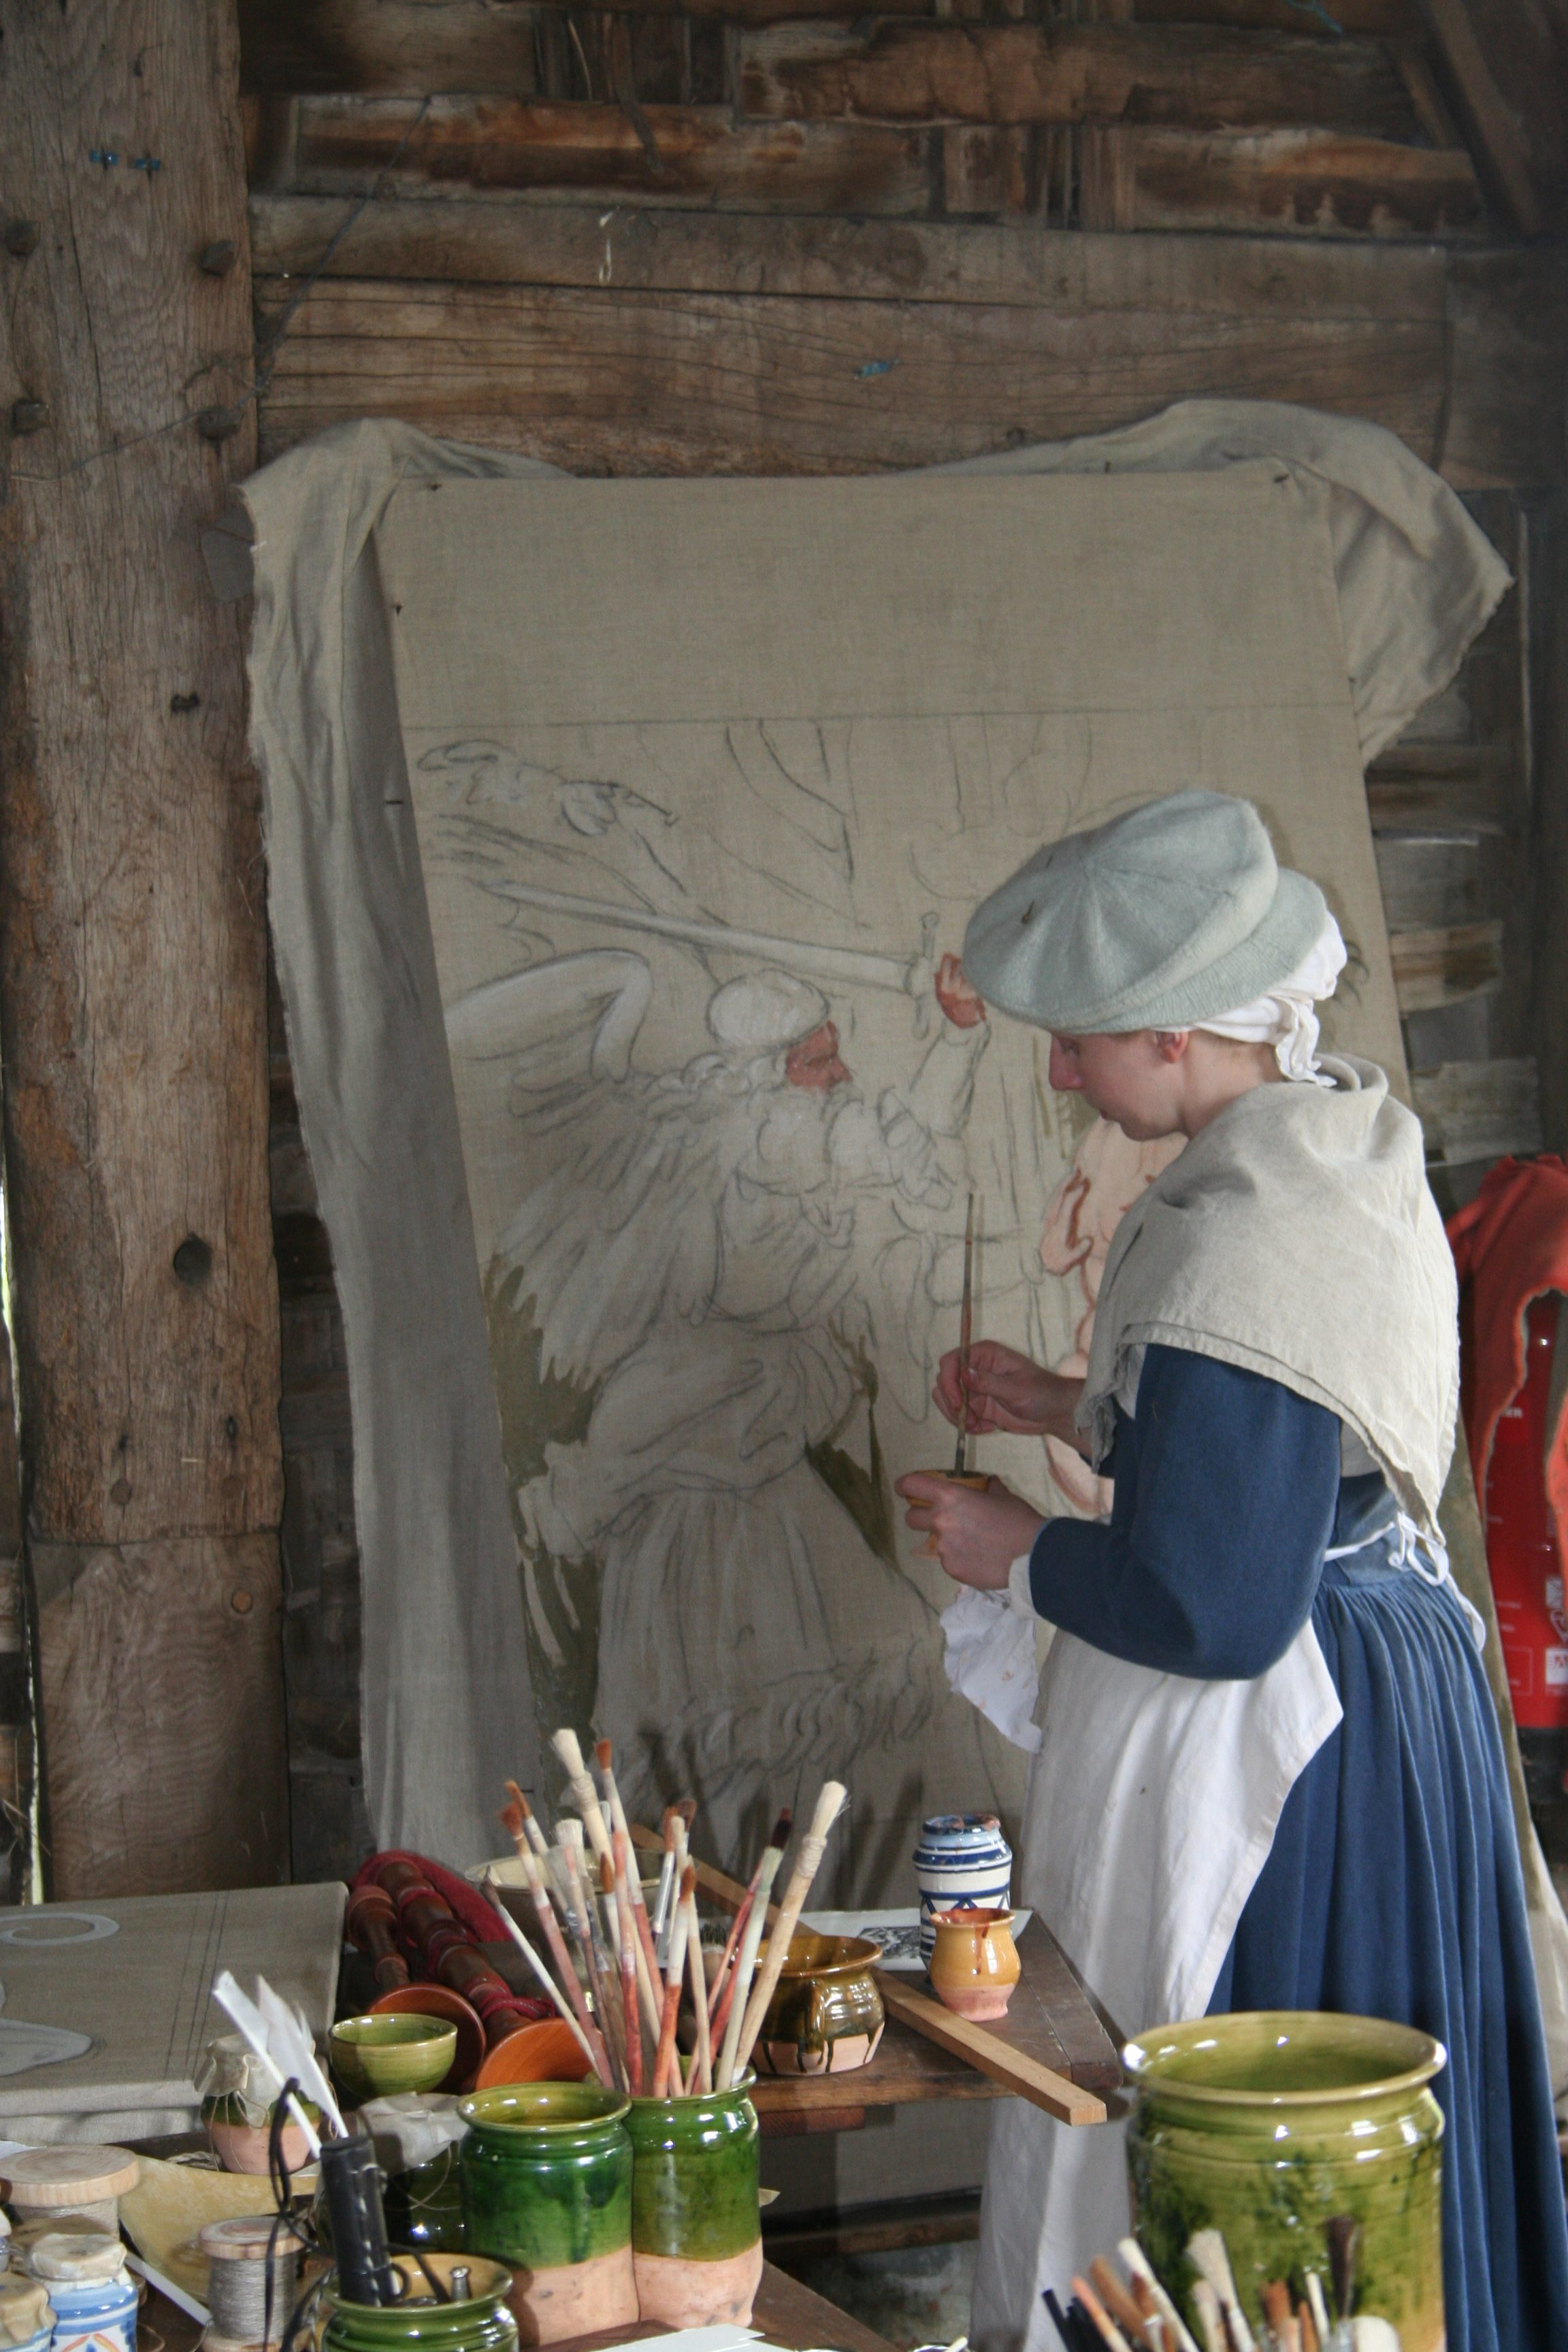 Tudor stained cloth in production